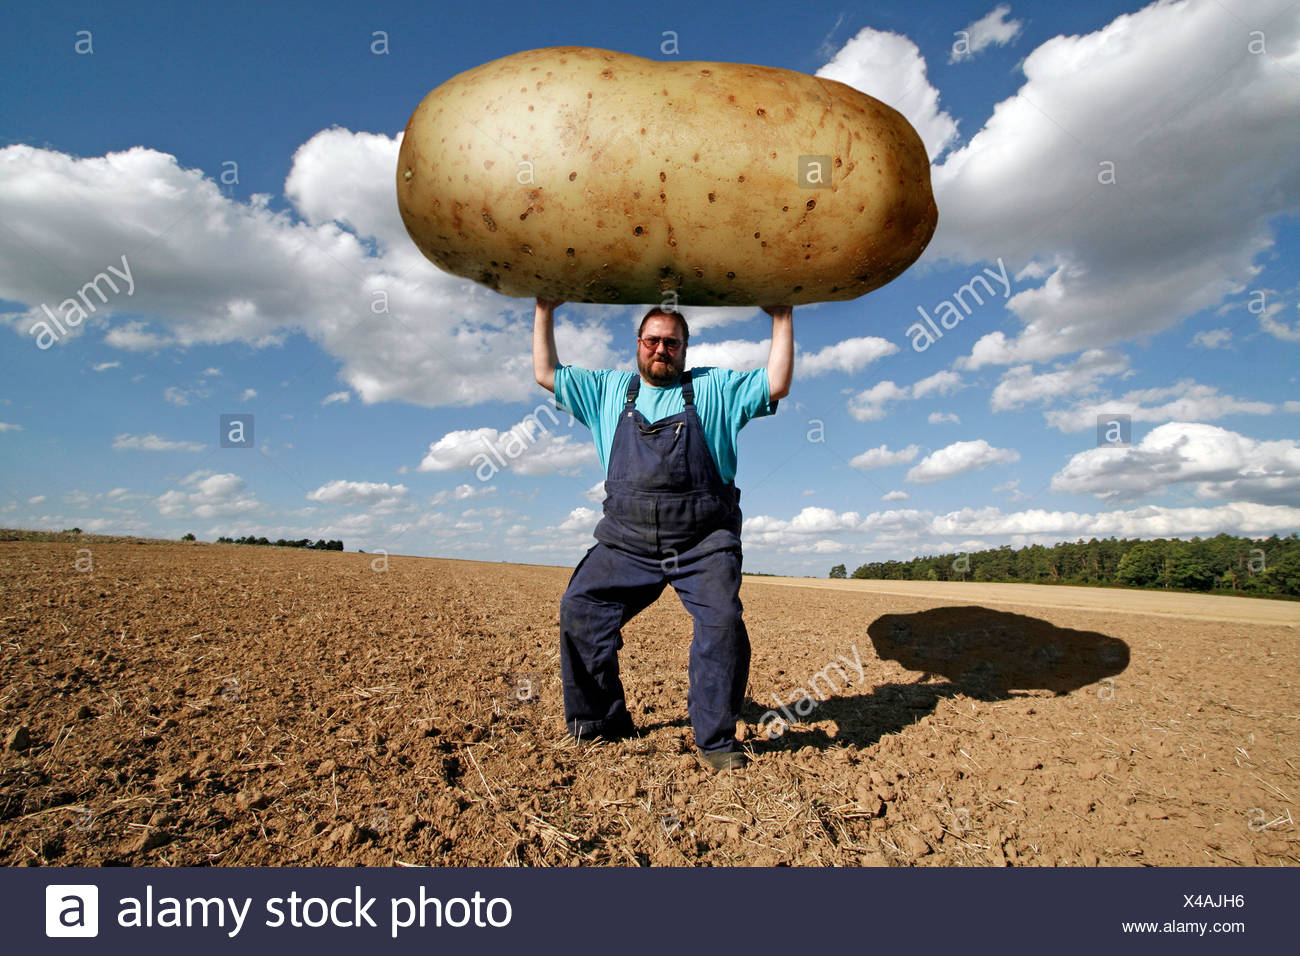 Farmer holding an oversized potato, genetically modified food - Stock Image